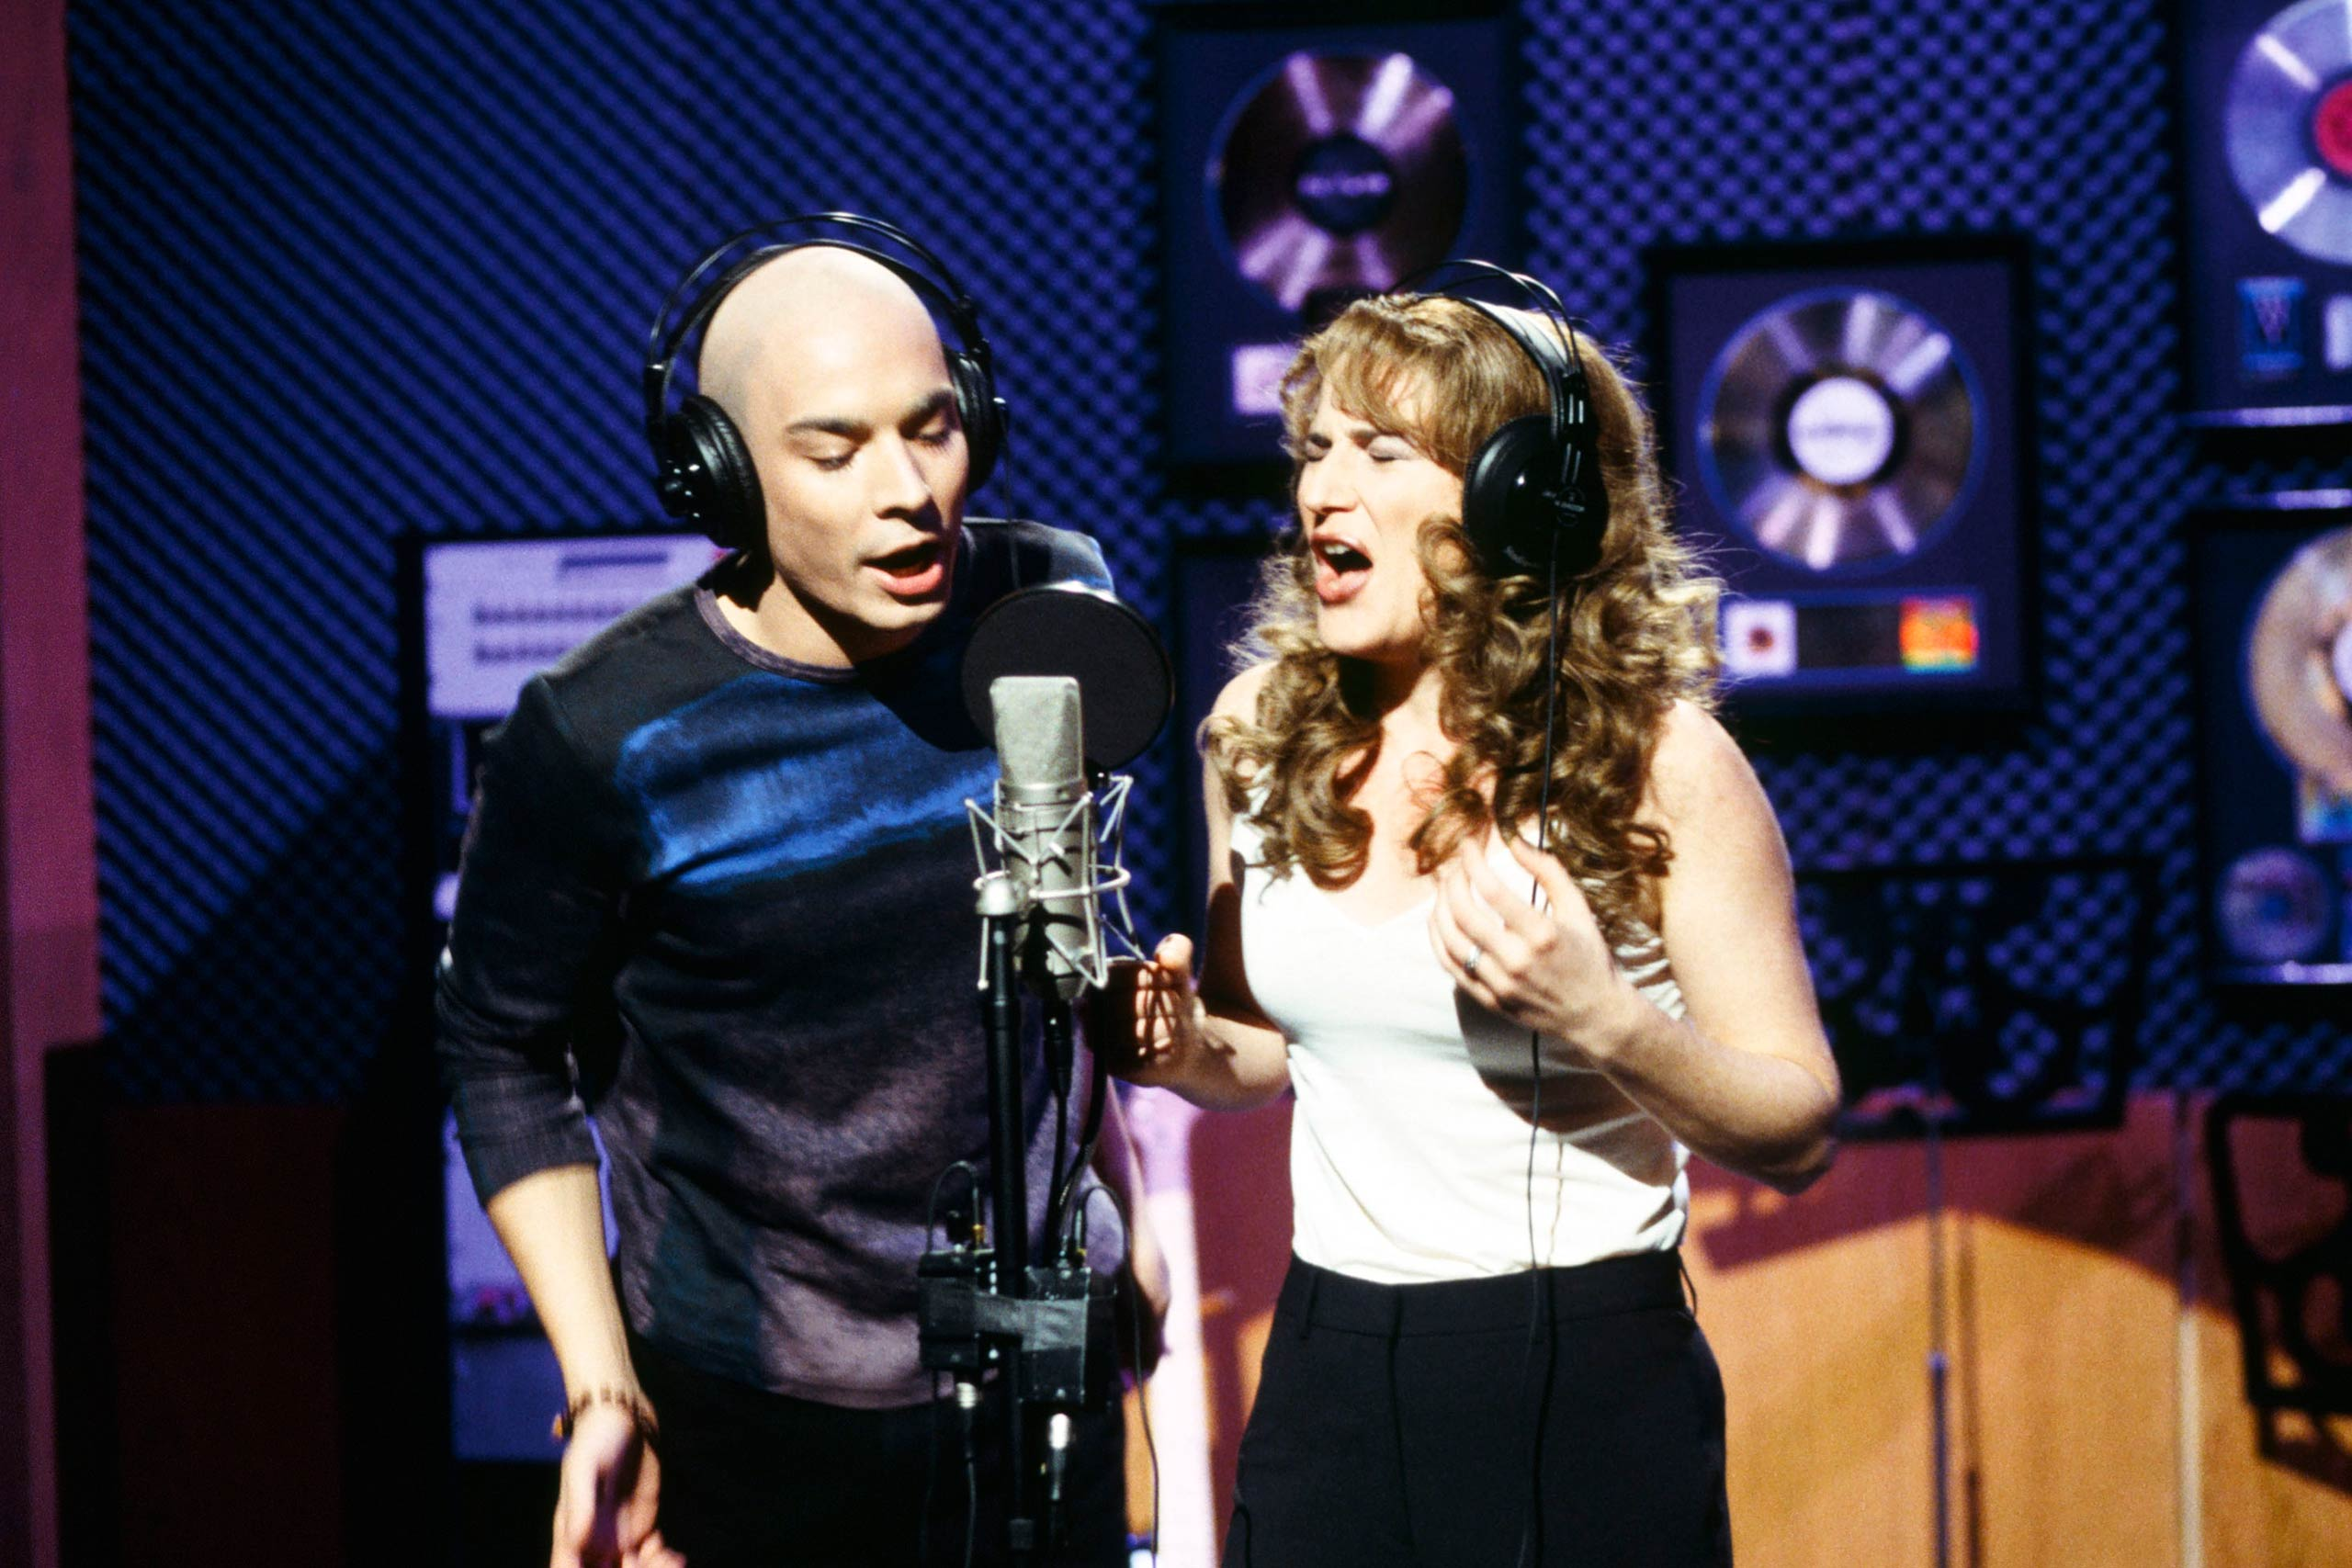 From left: Jimmy Fallon as Michael Stipe and Ana Gasteyer as Celine Dion in 1998.